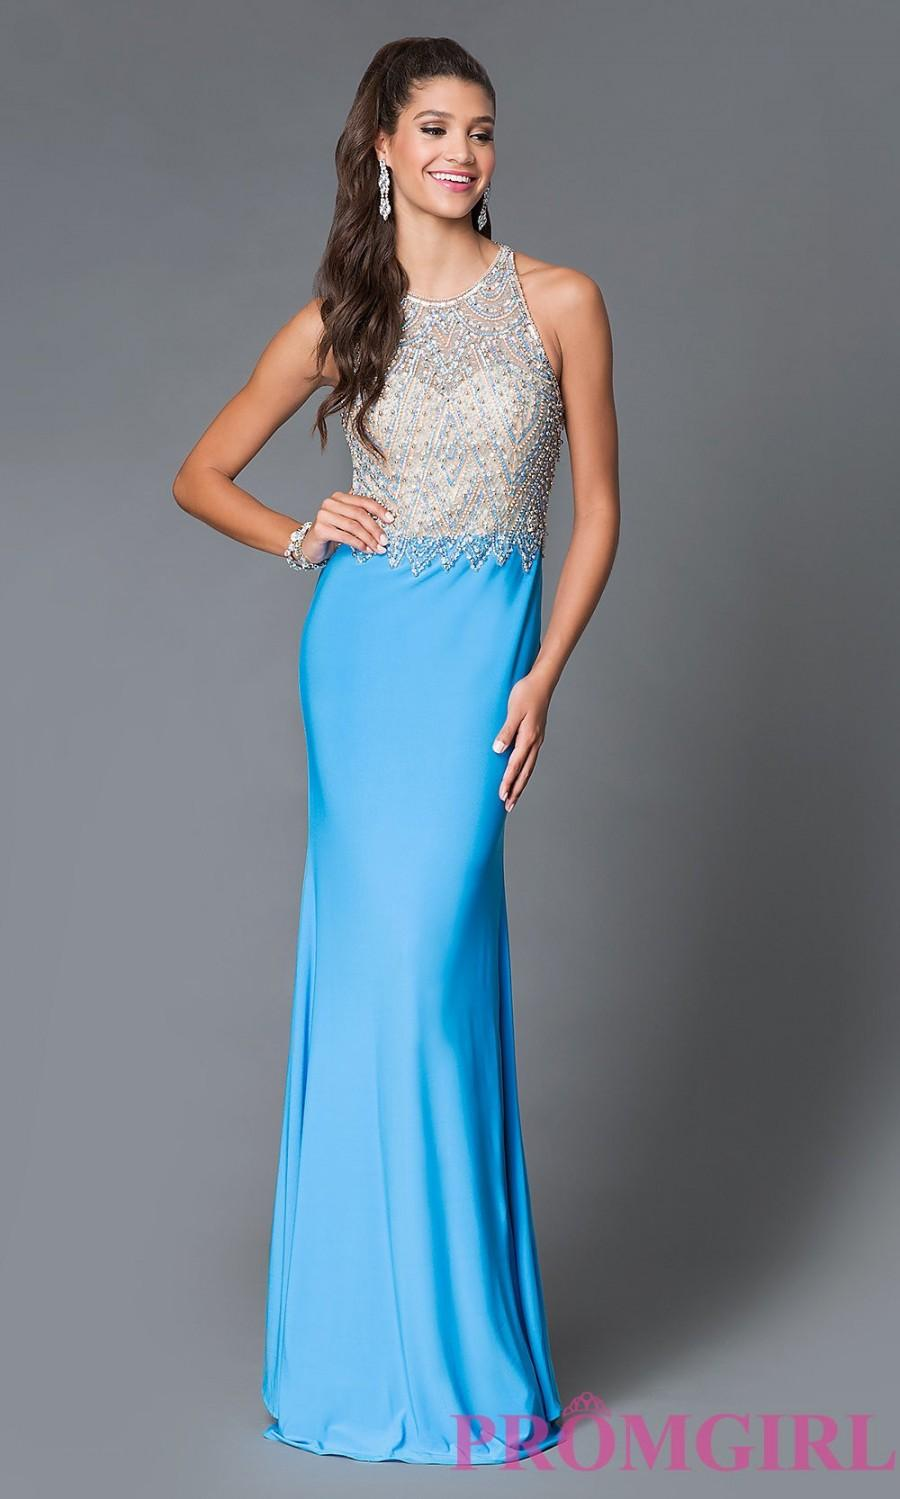 Turquoise Beaded Illusion Bodice Prom Dress - Discount Evening ...